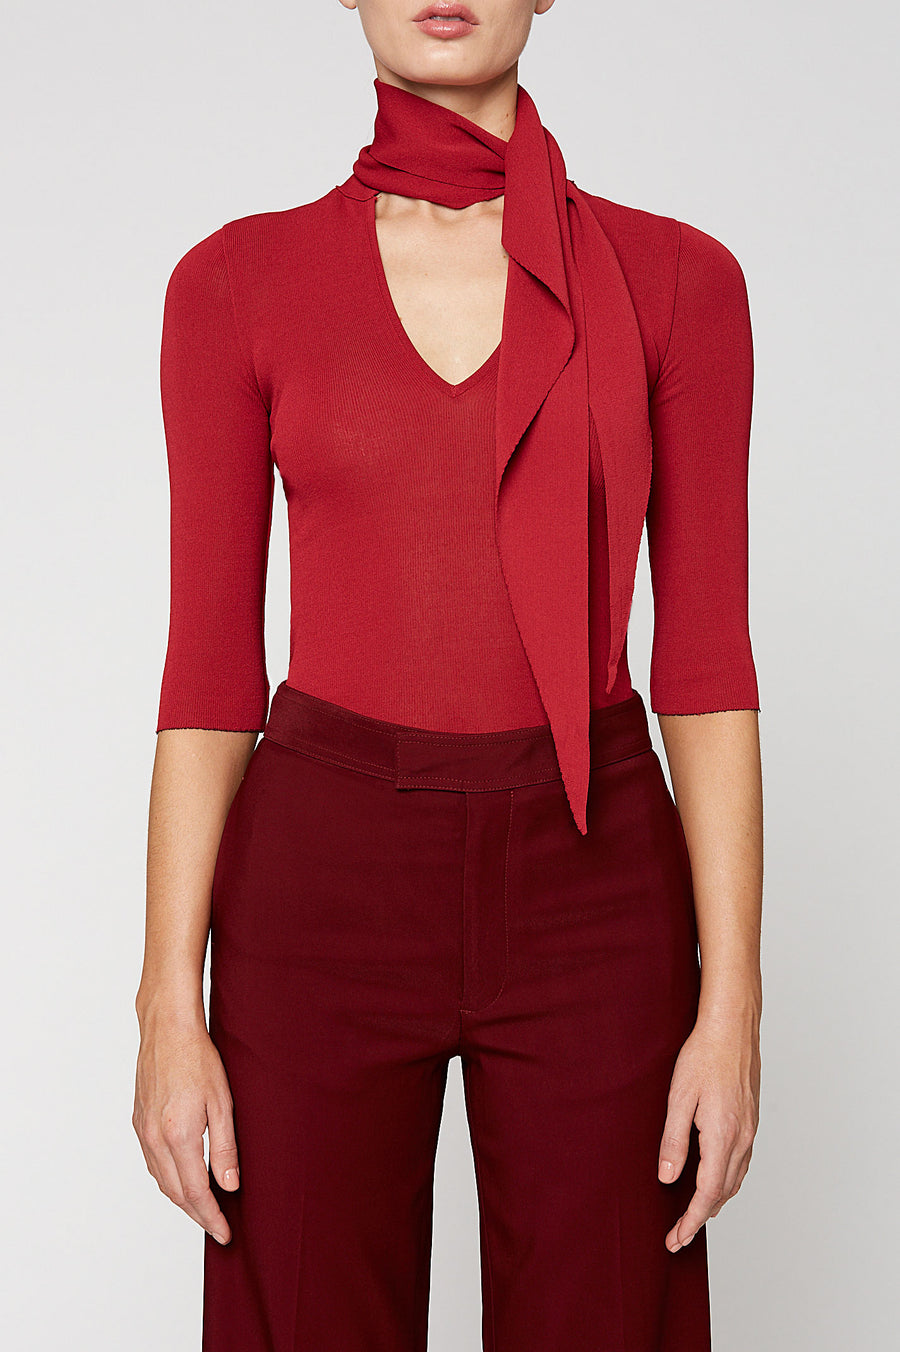 PLEATED RIB CRAVAT SWEATER, RED color